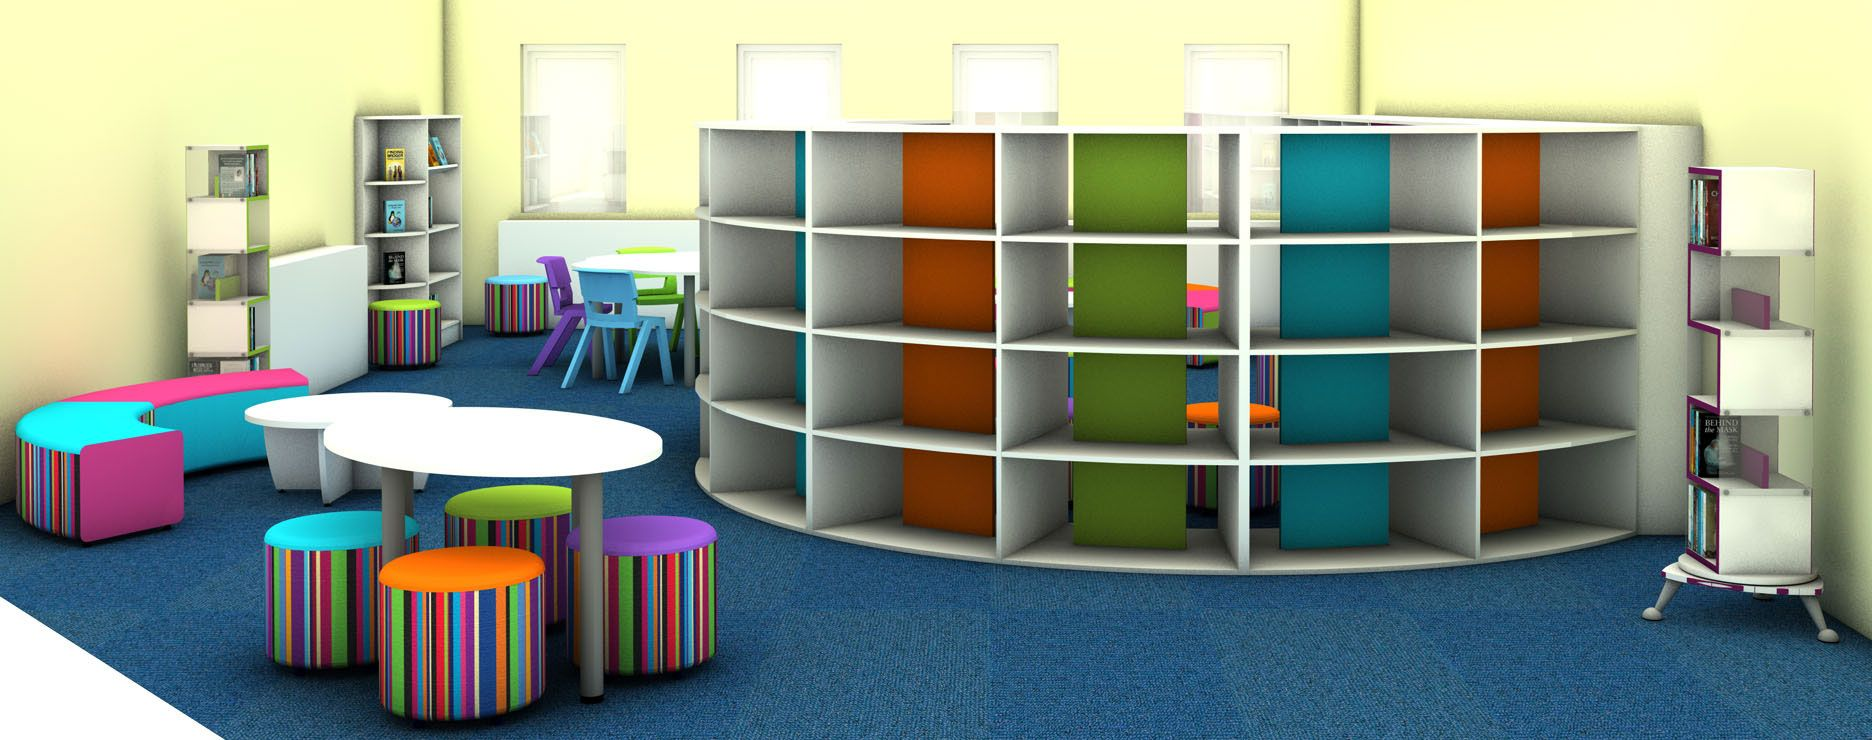 contemporary library furniture. Light And Contemporary Gloss White Primary School Library Design Furniture F